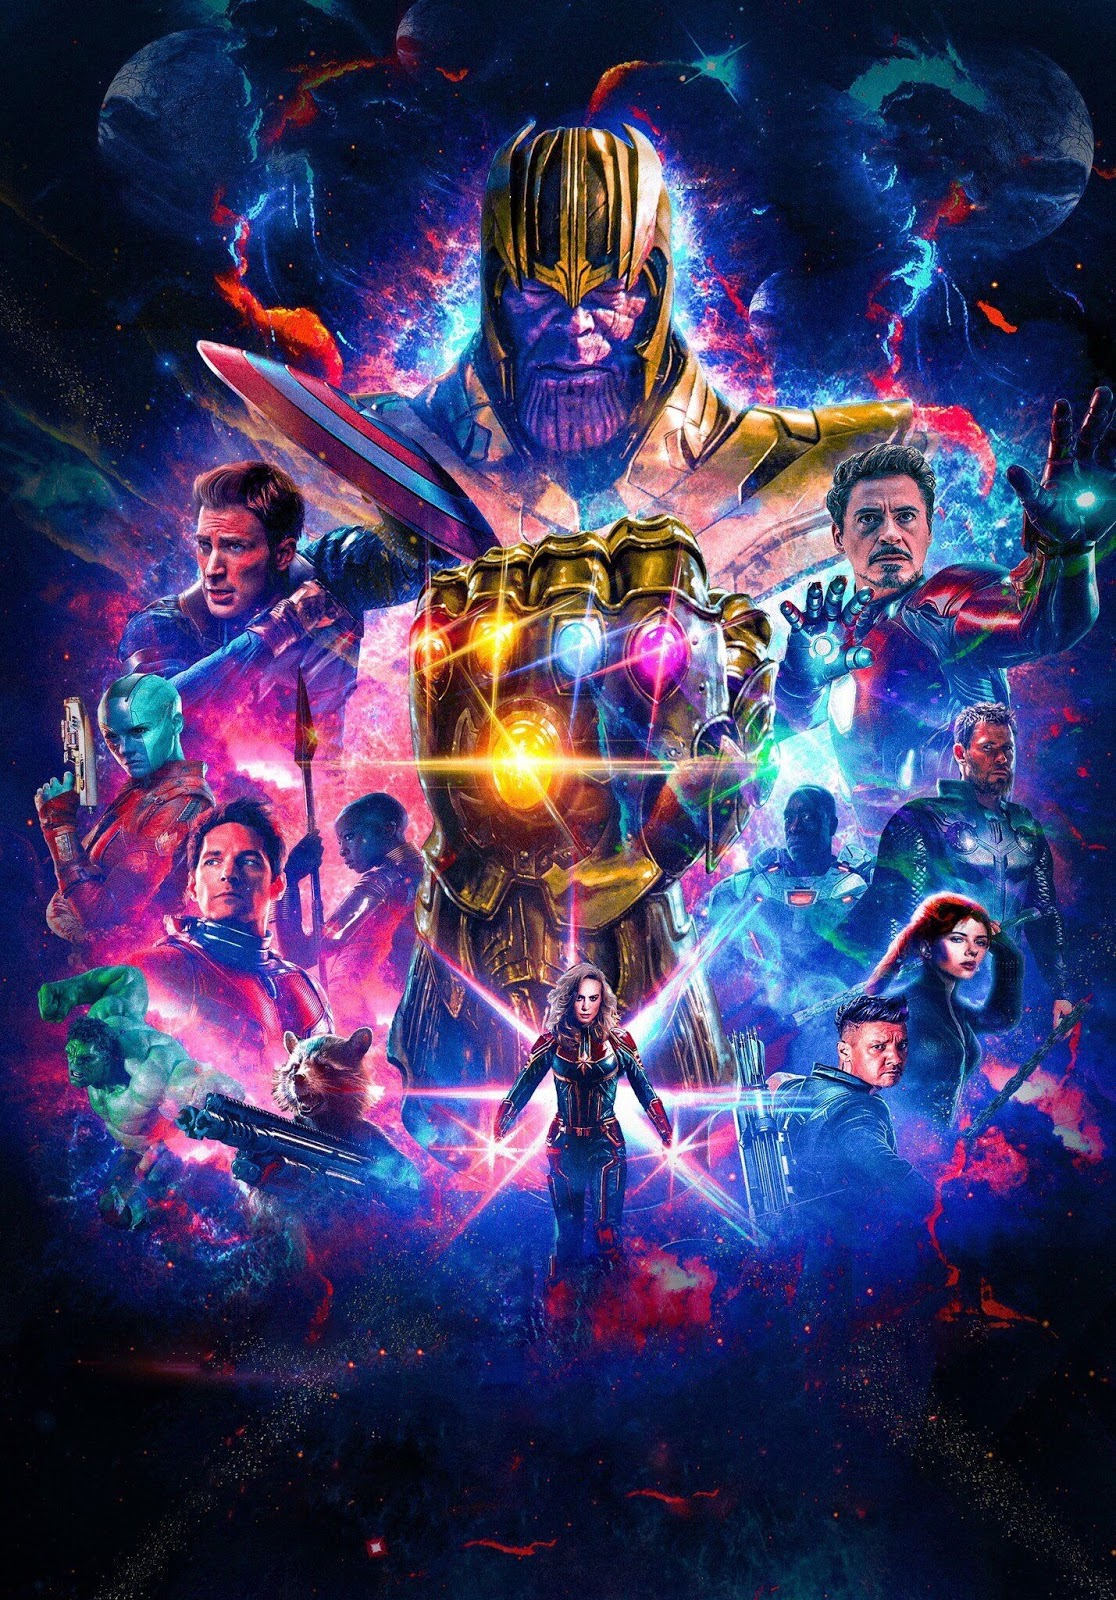 Avengers 4 End Game And Infinity War HD Wallpapers Download In 4K 1116x1600